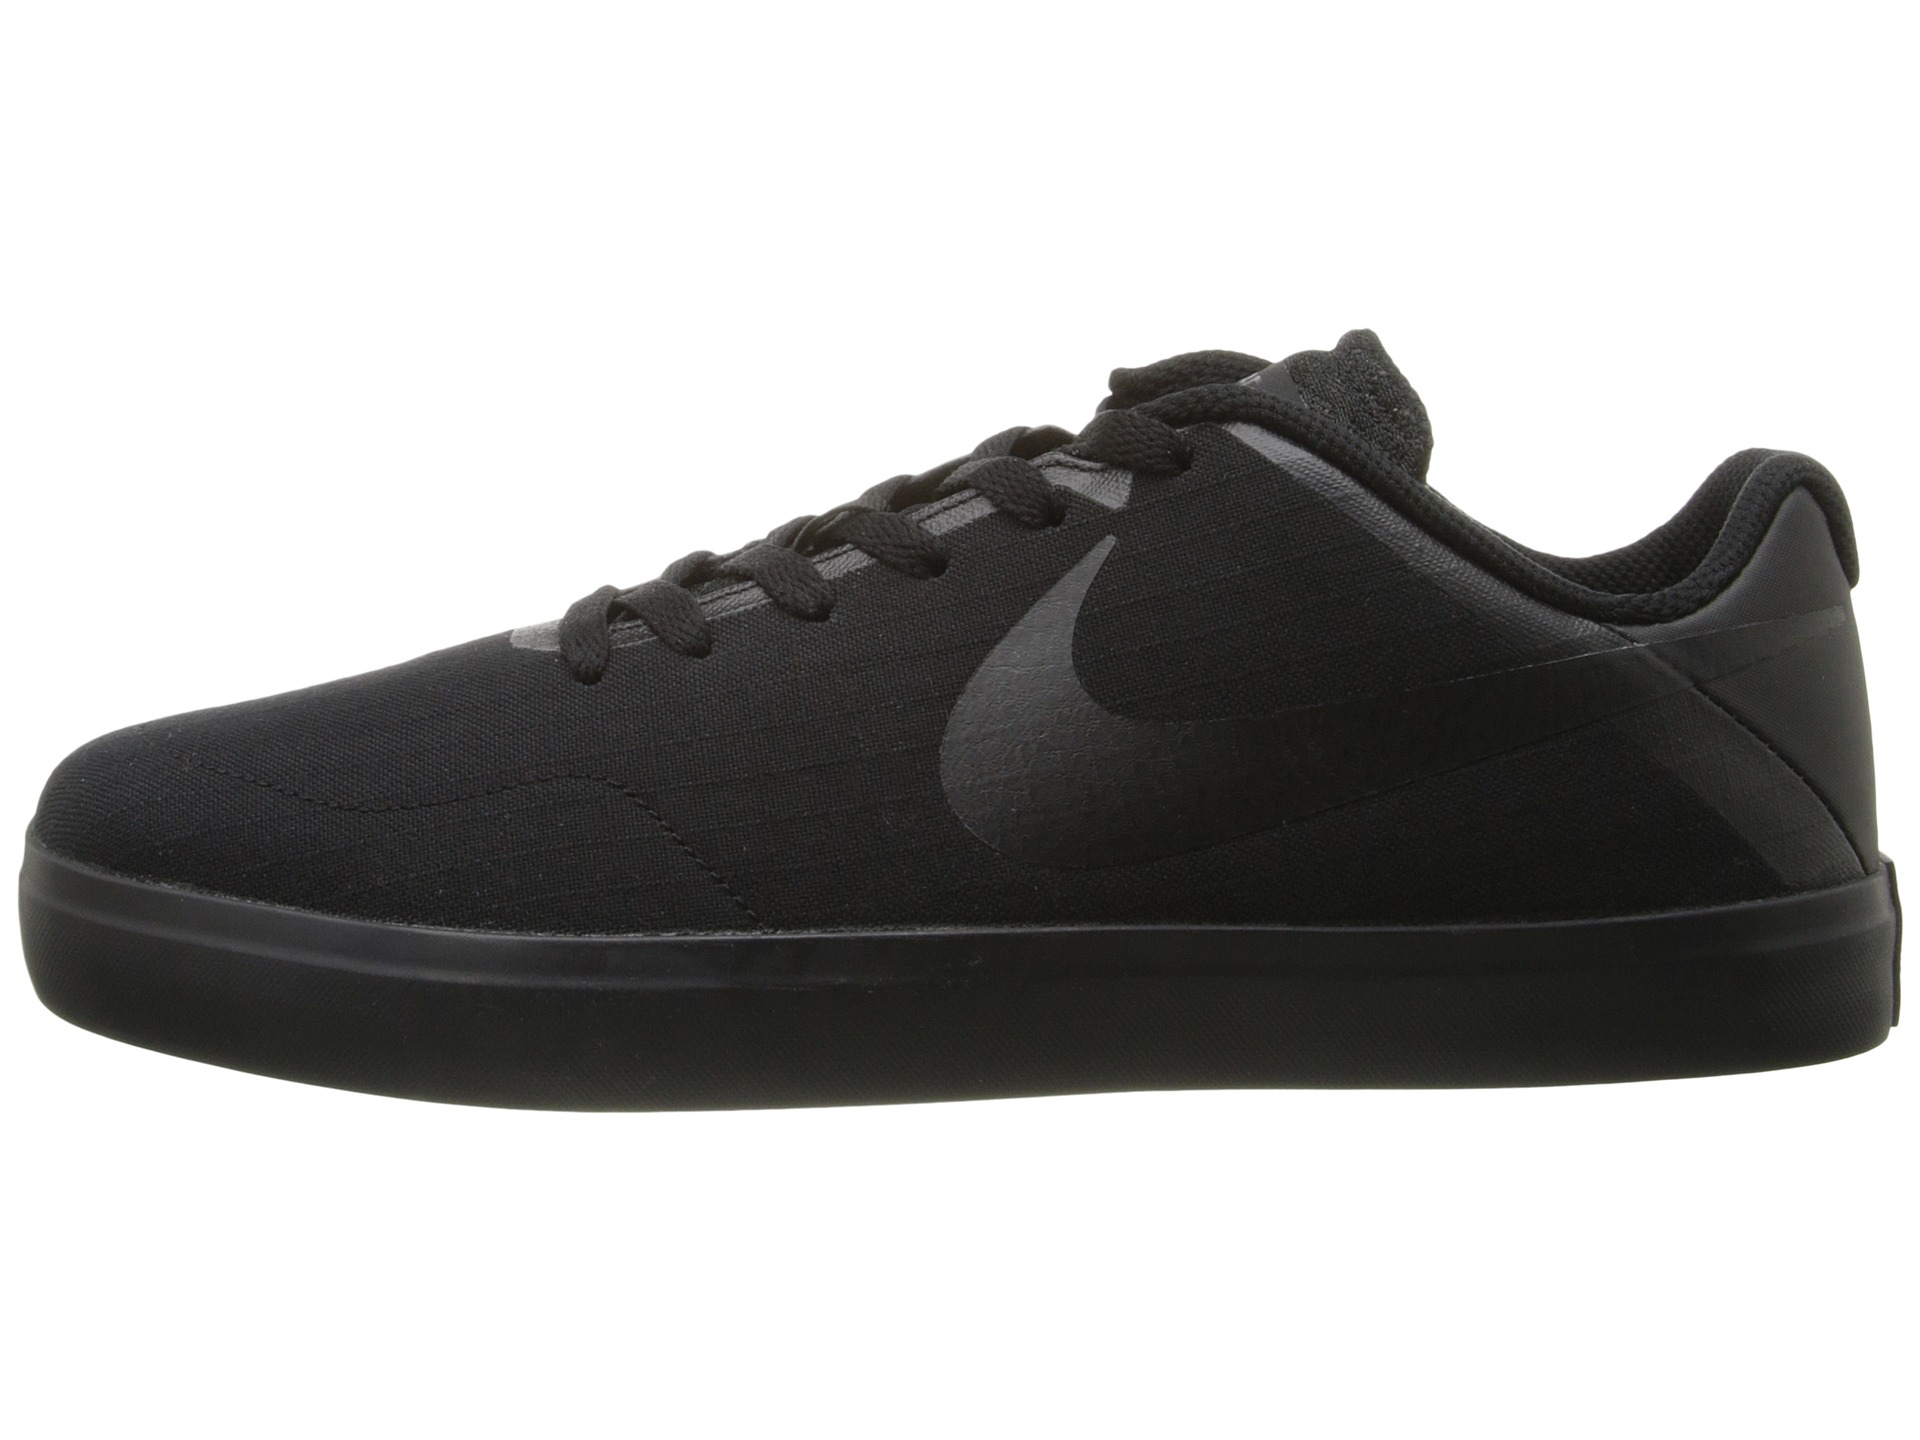 44b43801128a Mens Nike SB Paul Rodriguez CTD LR Canvas Obsidian Black Black White  Sneakers